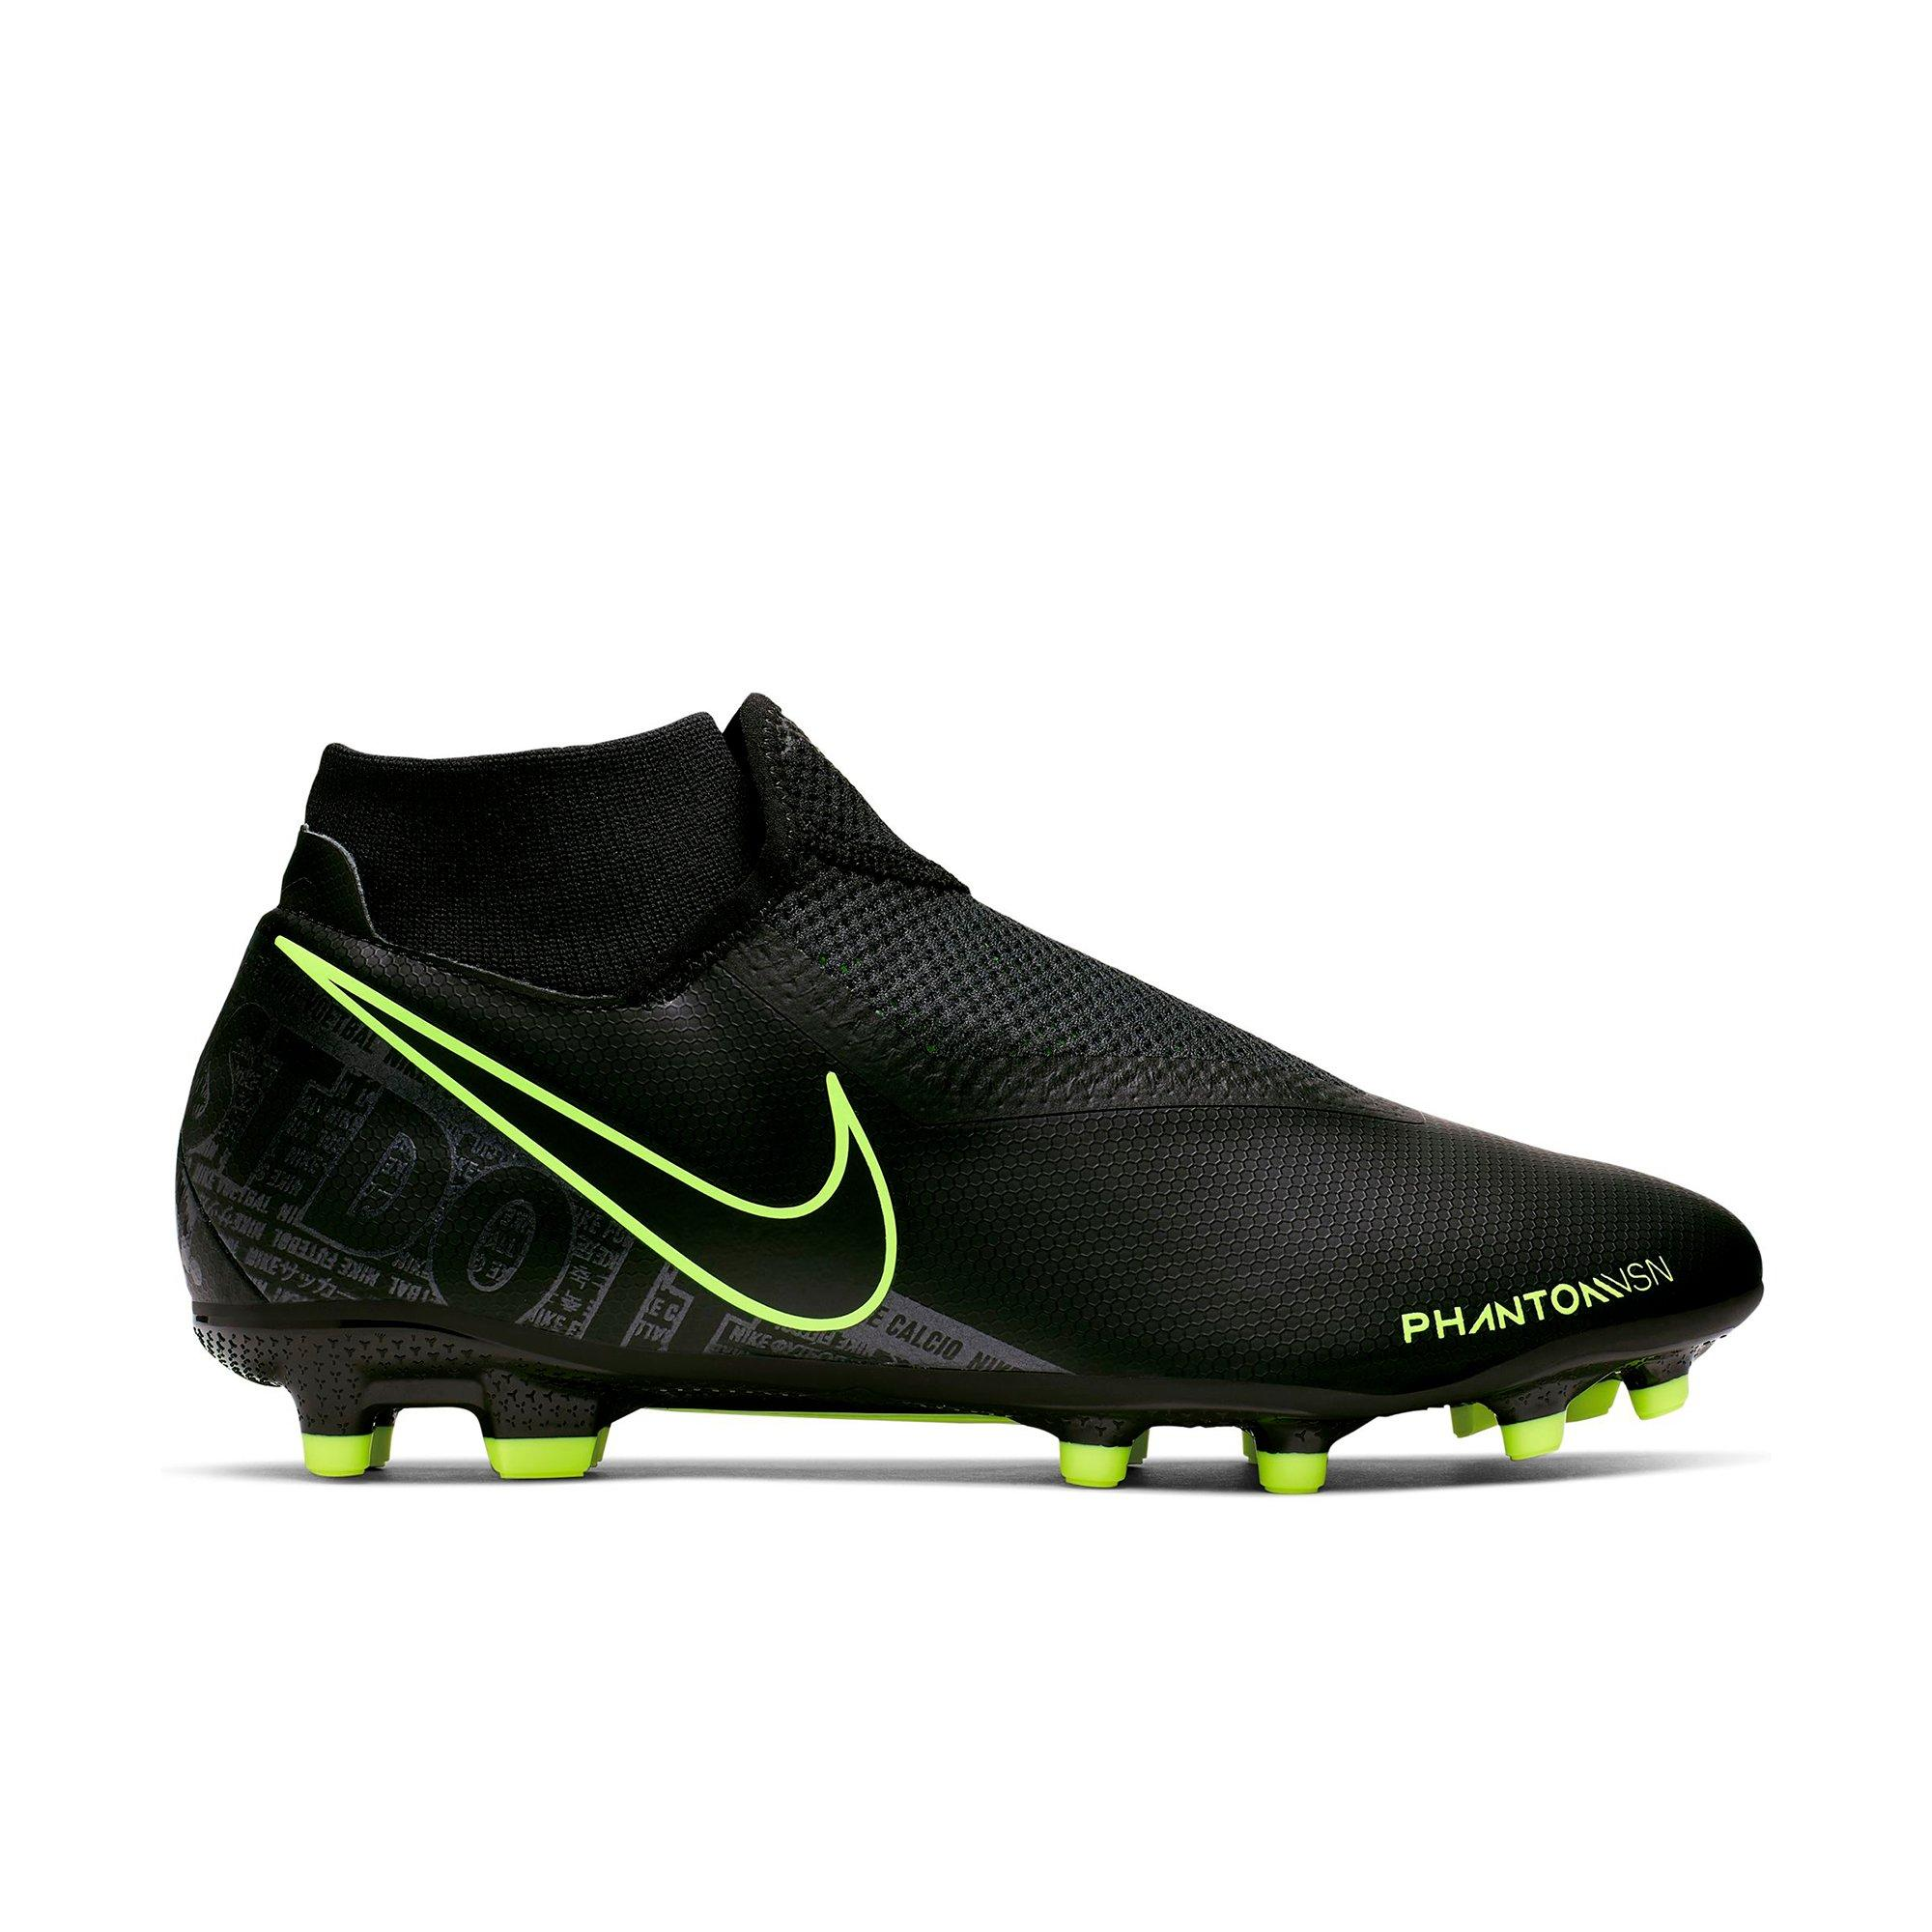 Independencia Sur oeste Fiesta  Nike Phantom Vision Academy Dynamic Fit MG Unisex Soccer Cleat - Hibbett |  City Gear